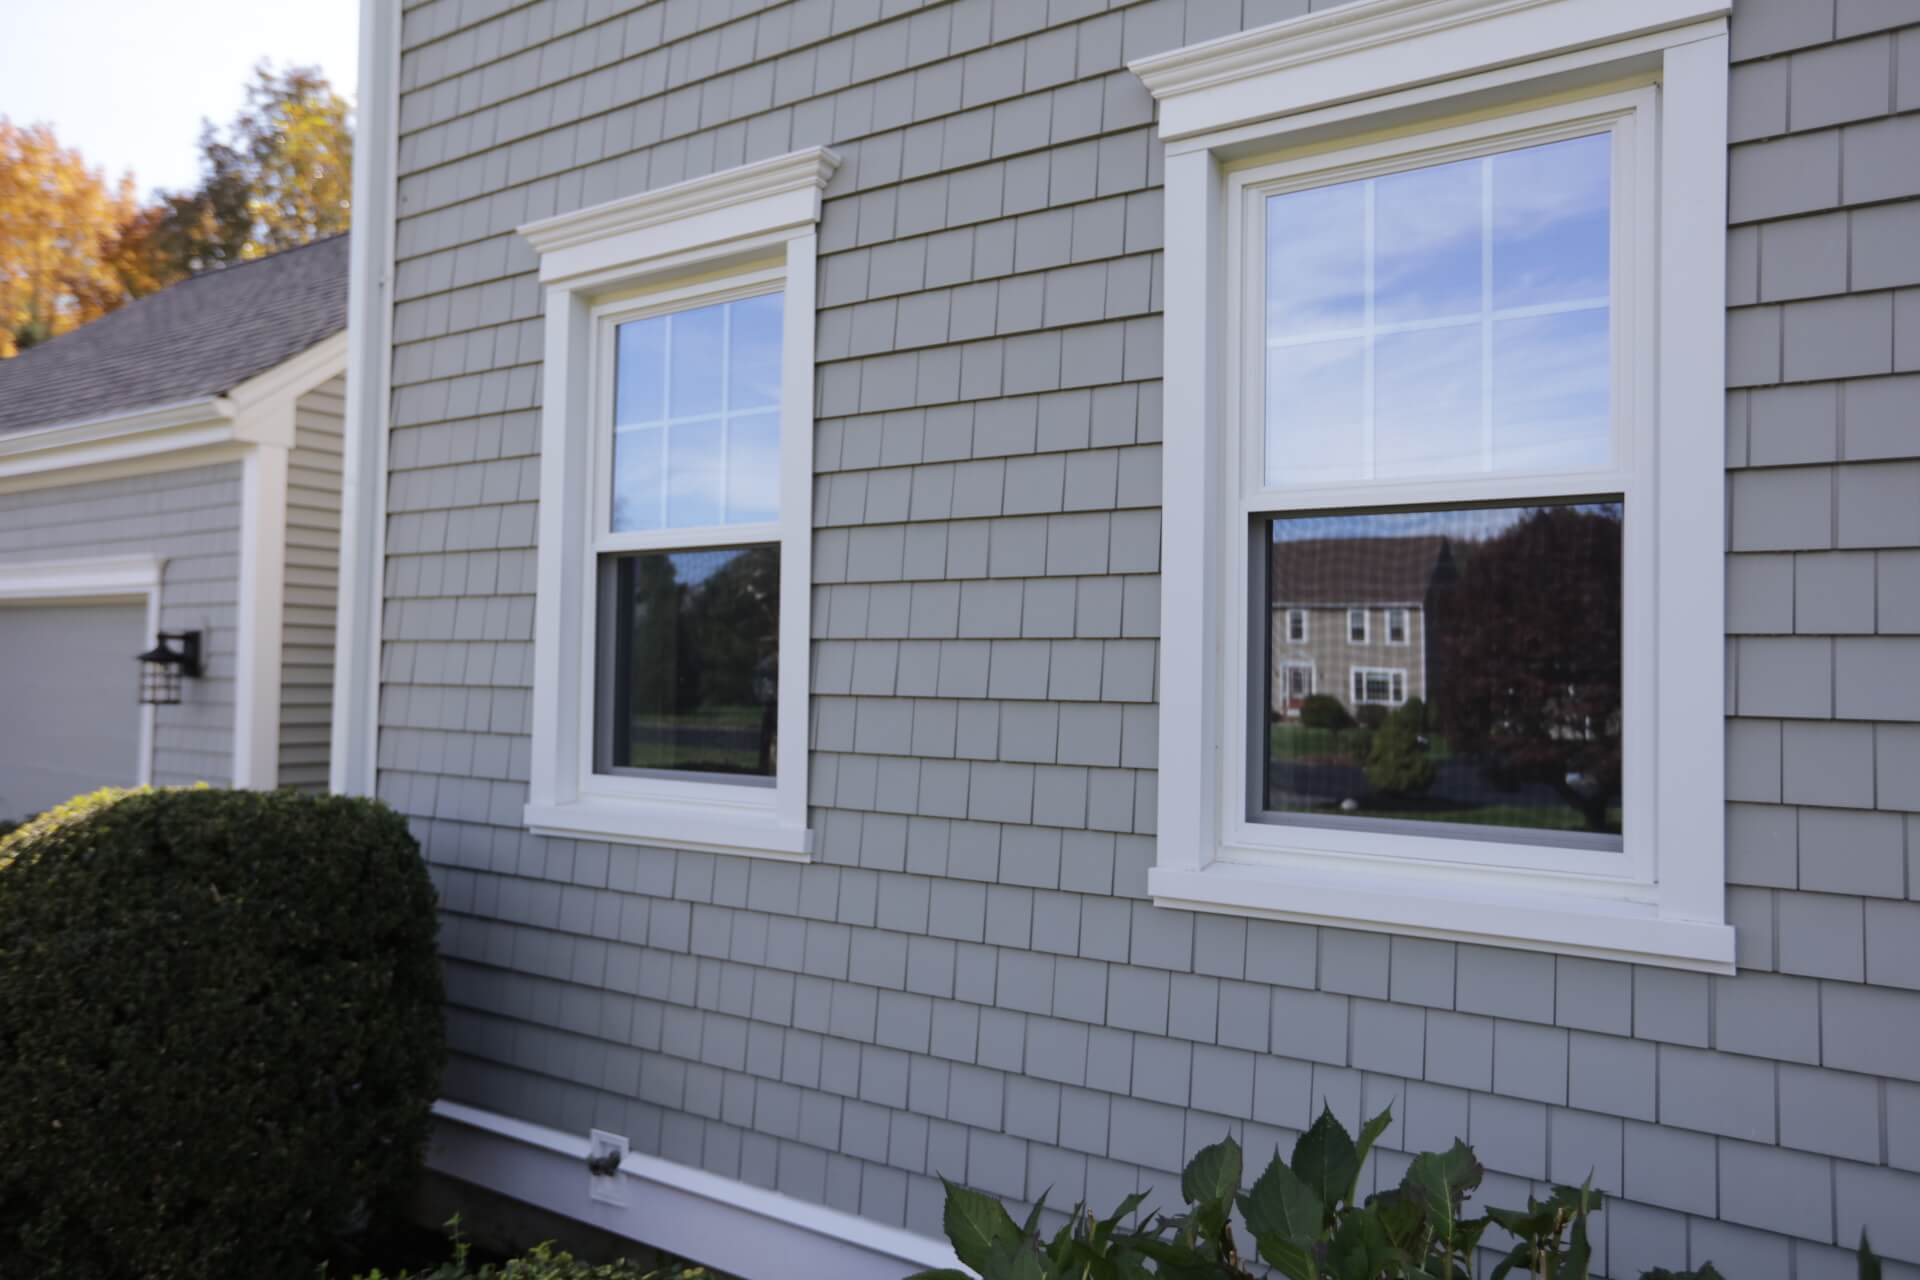 Siding & replacement window details on a home in RI